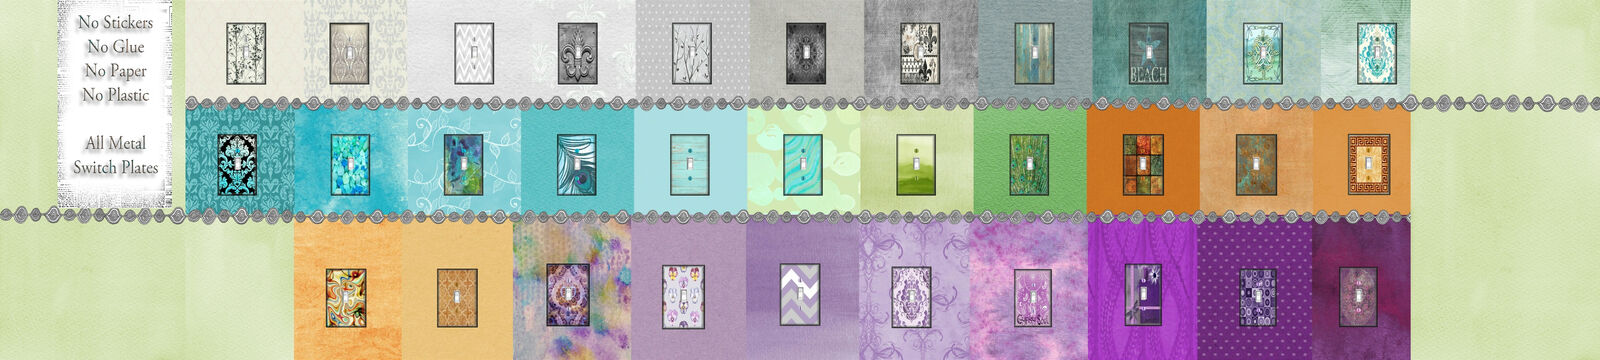 Luna Gallery Switch Plates